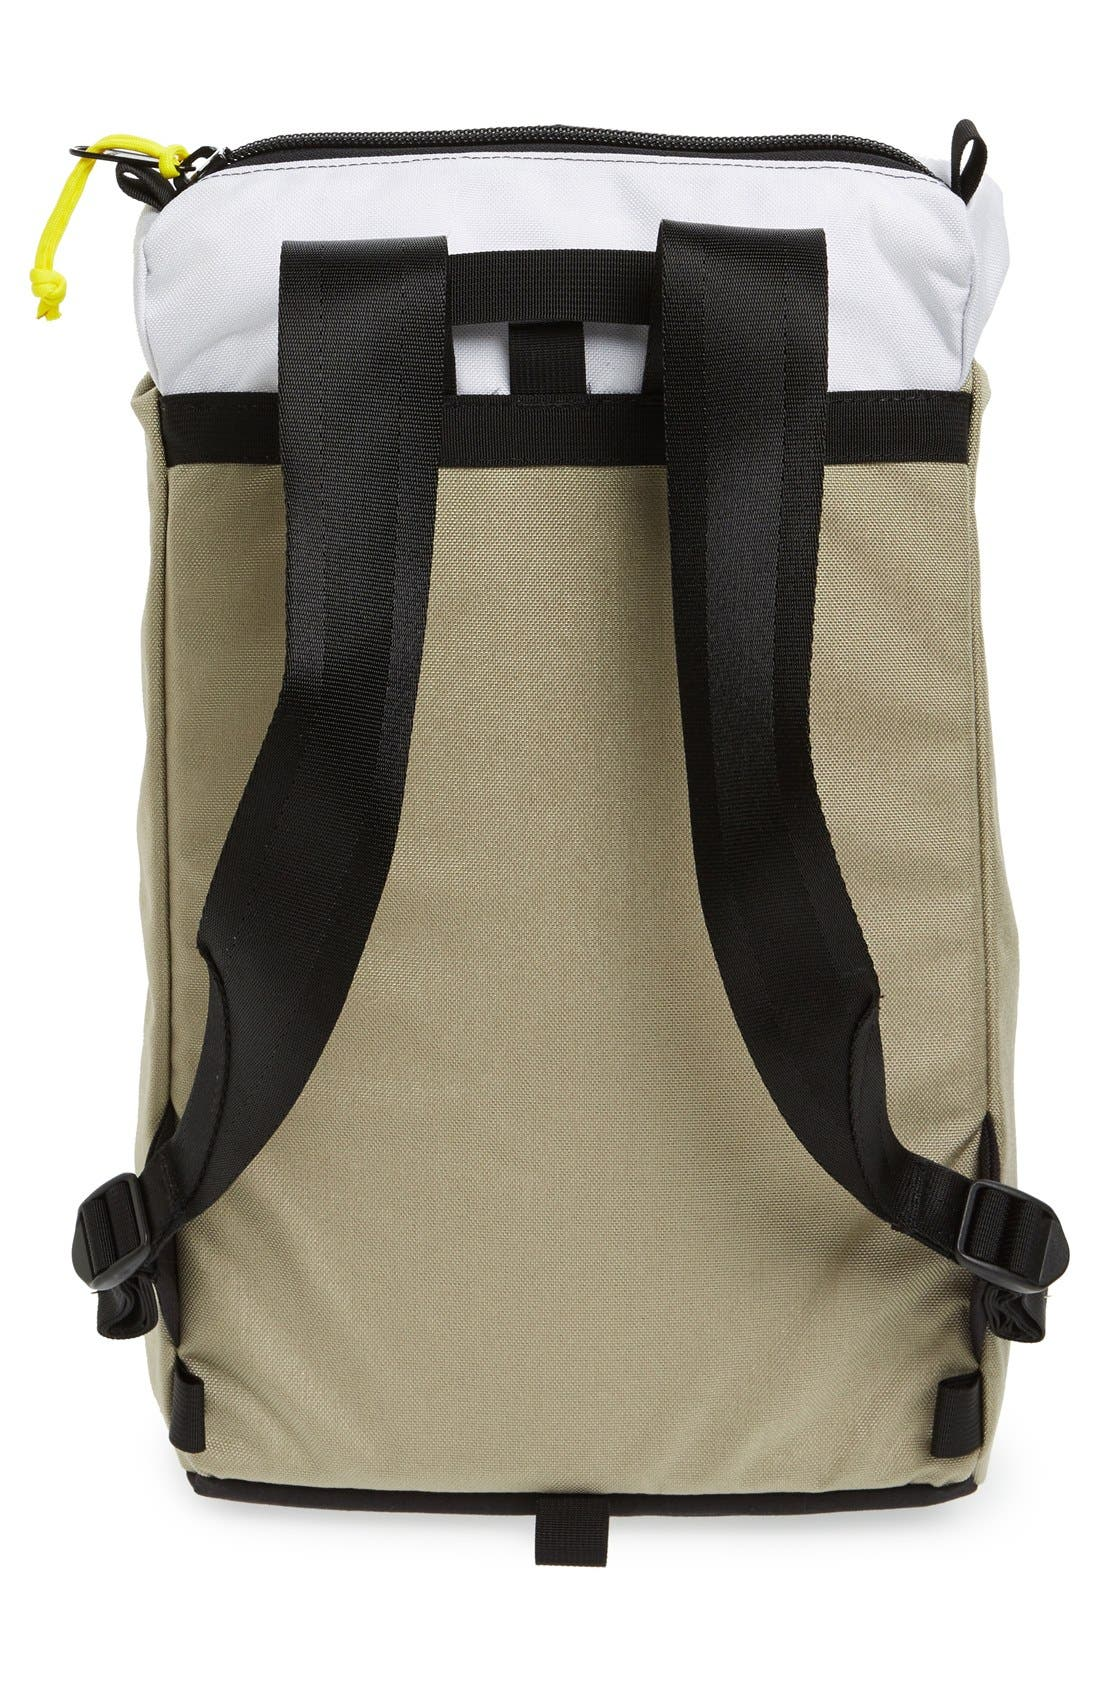 TOPO DESIGNS,                             'Y-Pack' Backpack,                             Alternate thumbnail 4, color,                             031